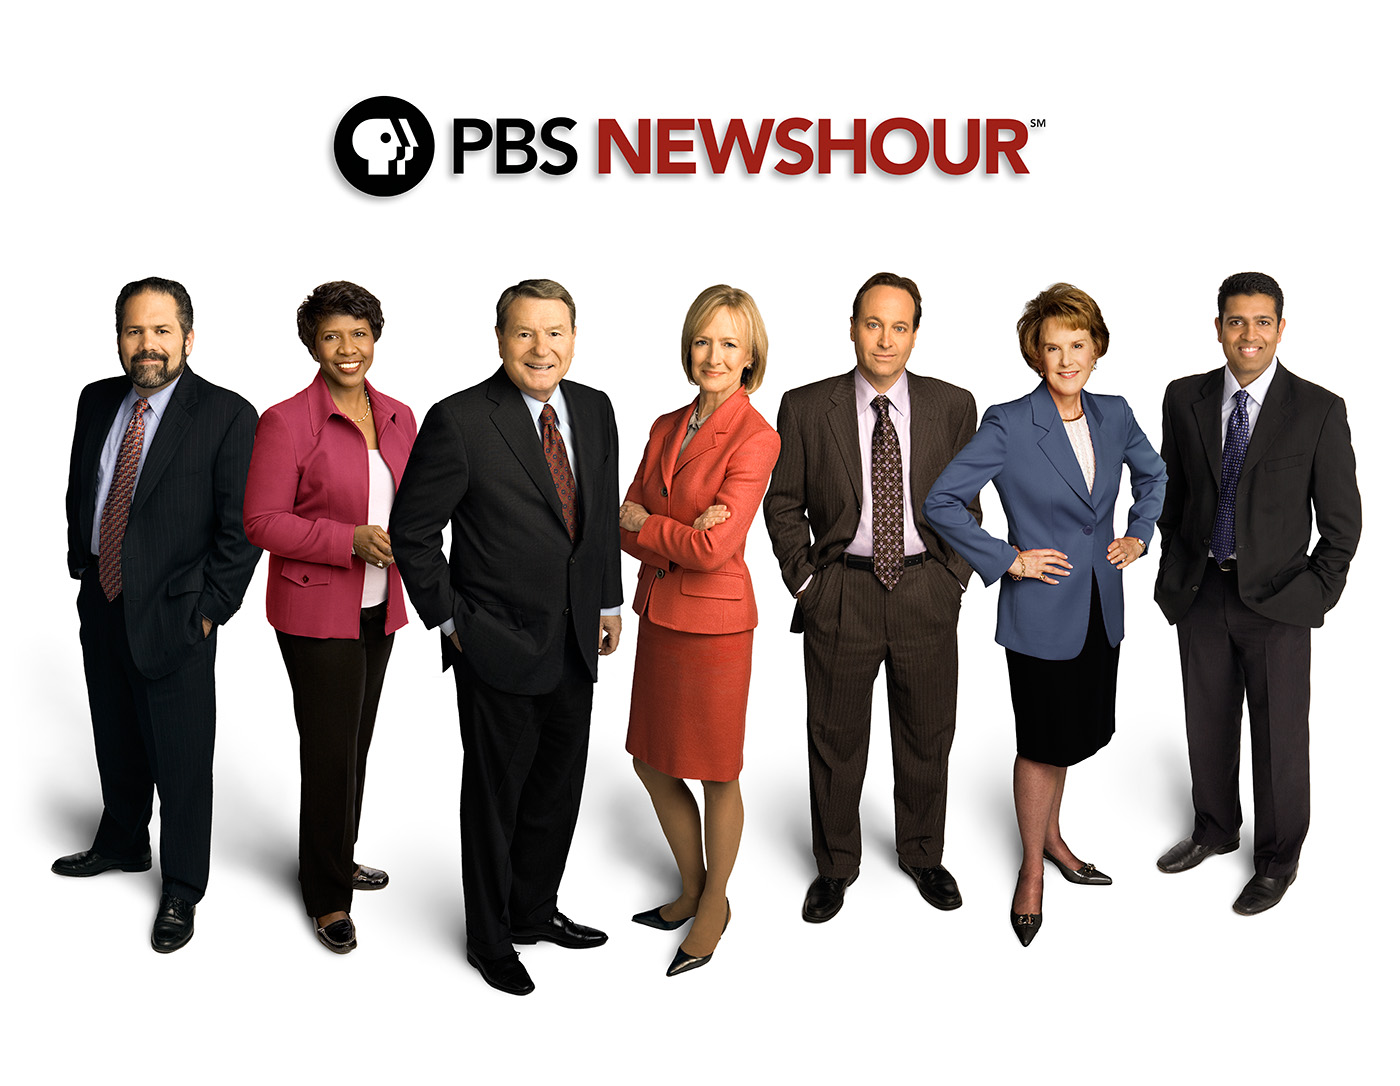 Client: PBS Newshour